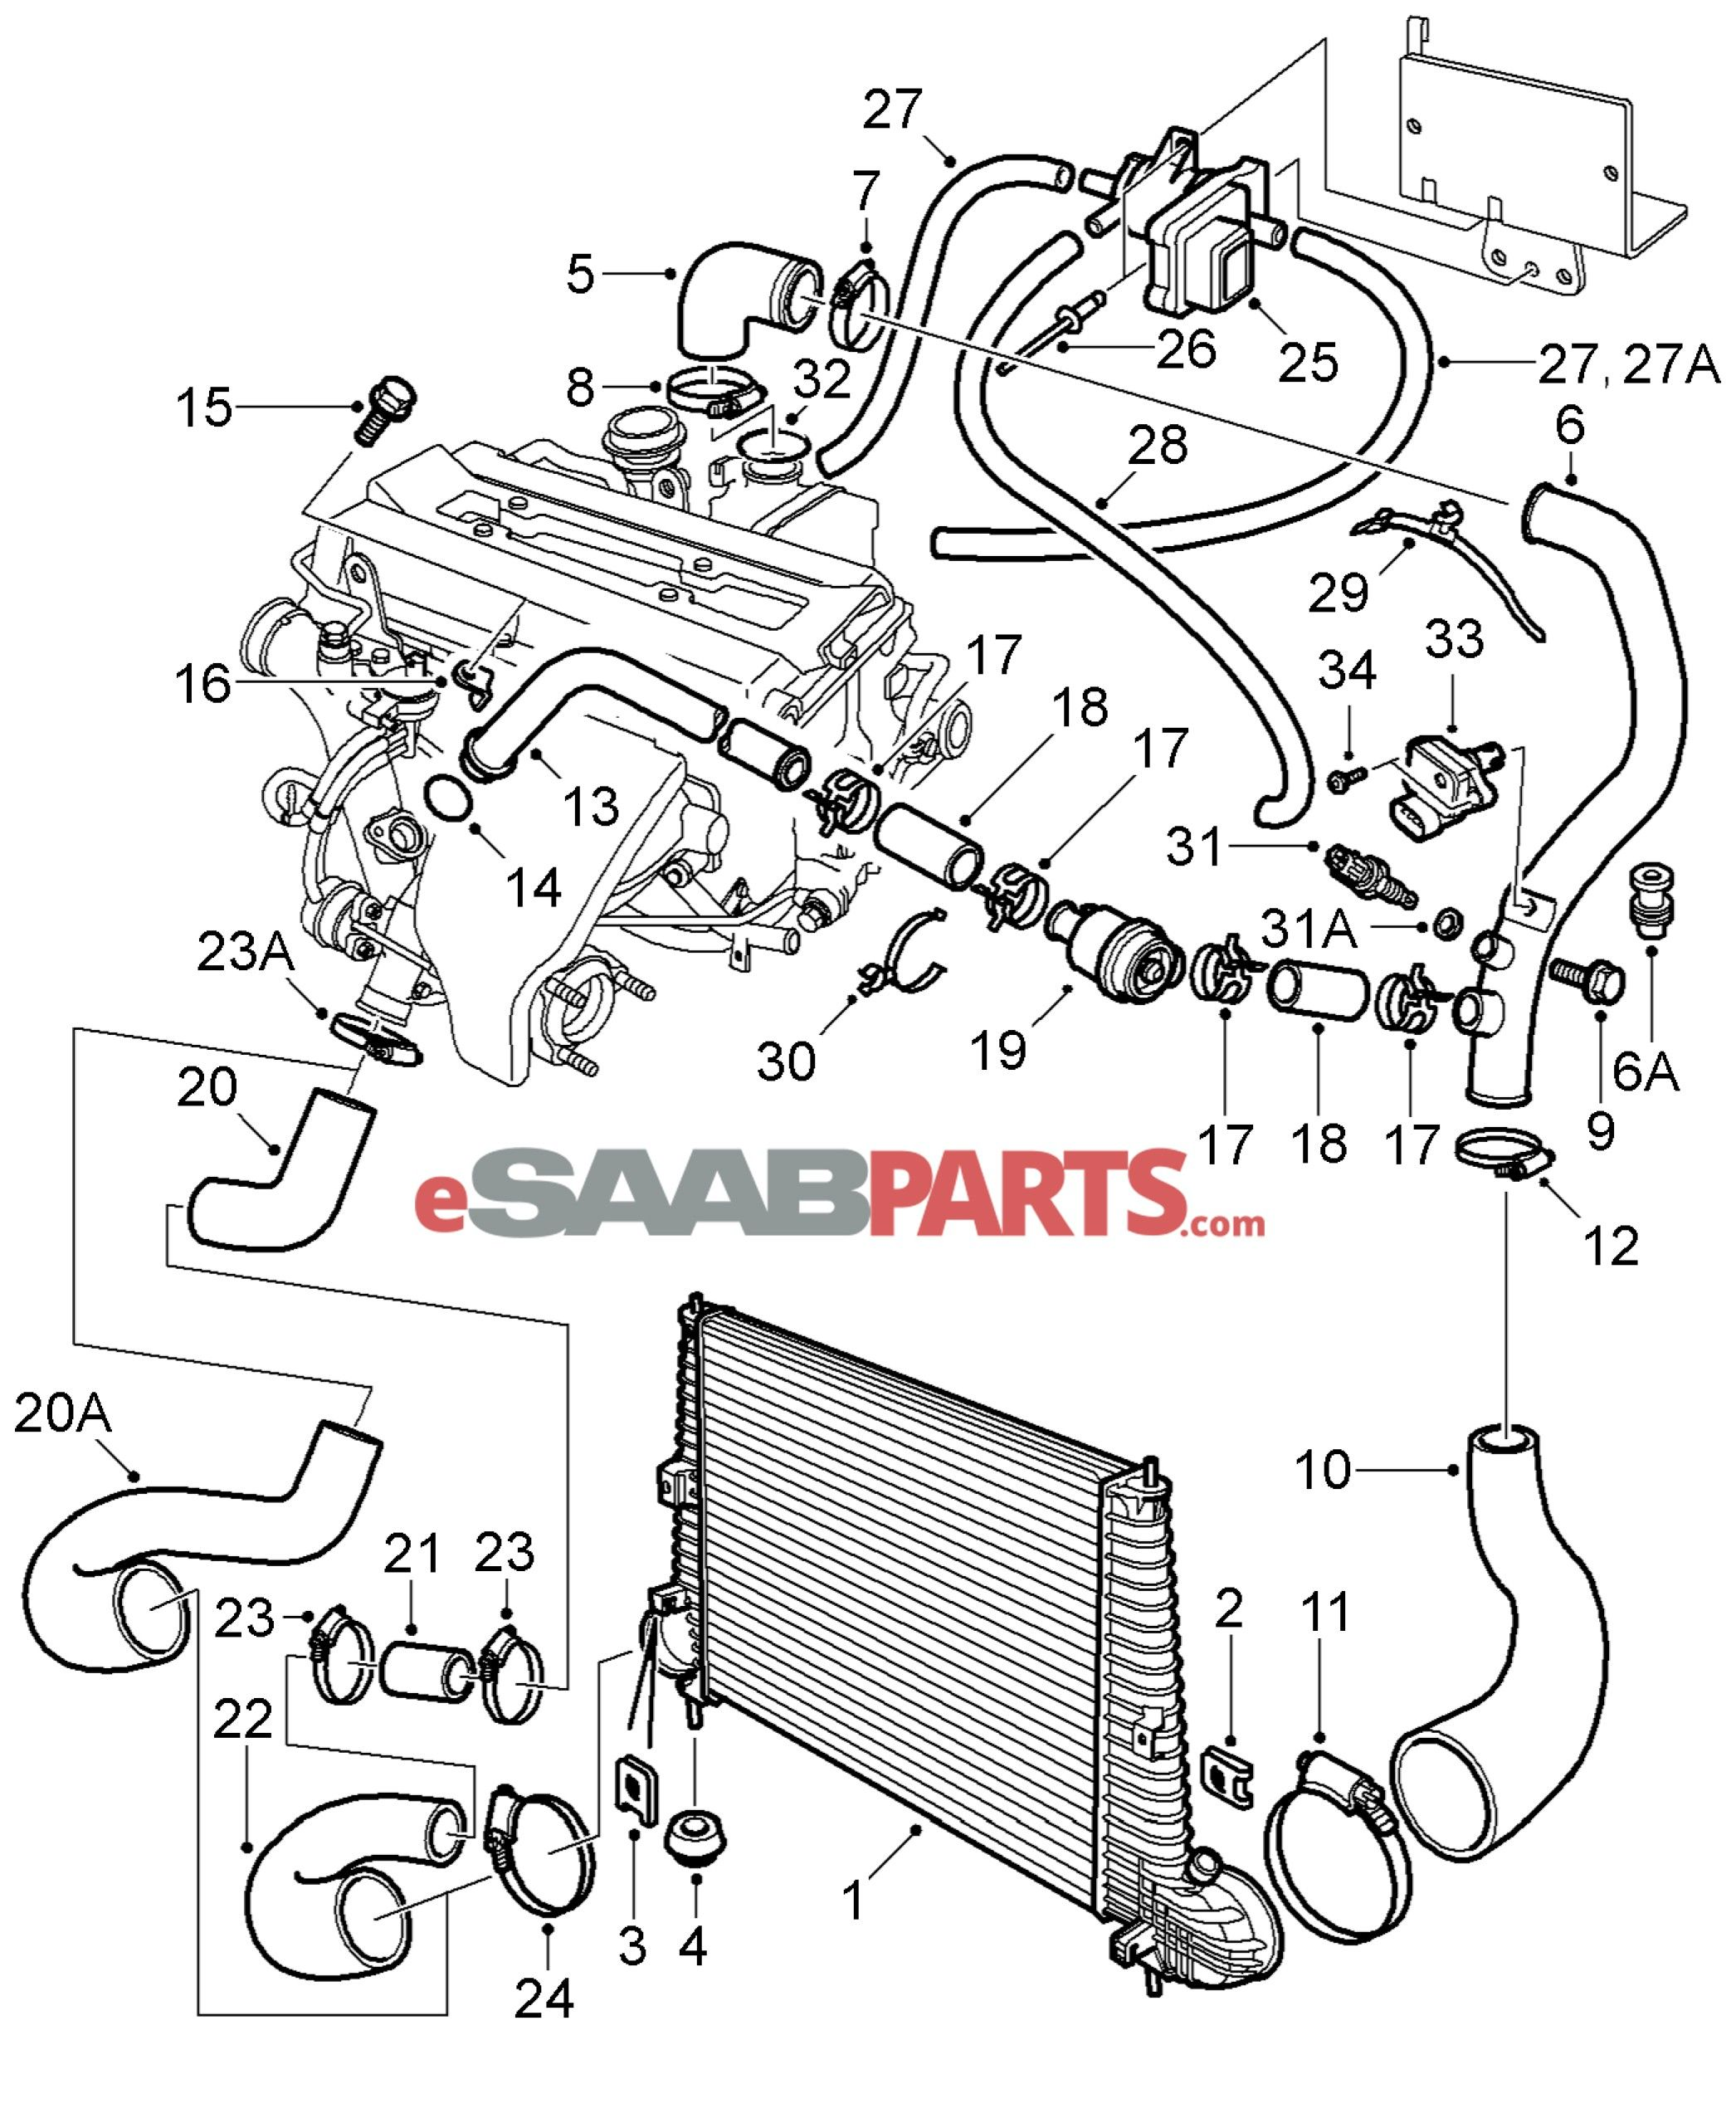 Saab 9 5 Engine Diagram Oil